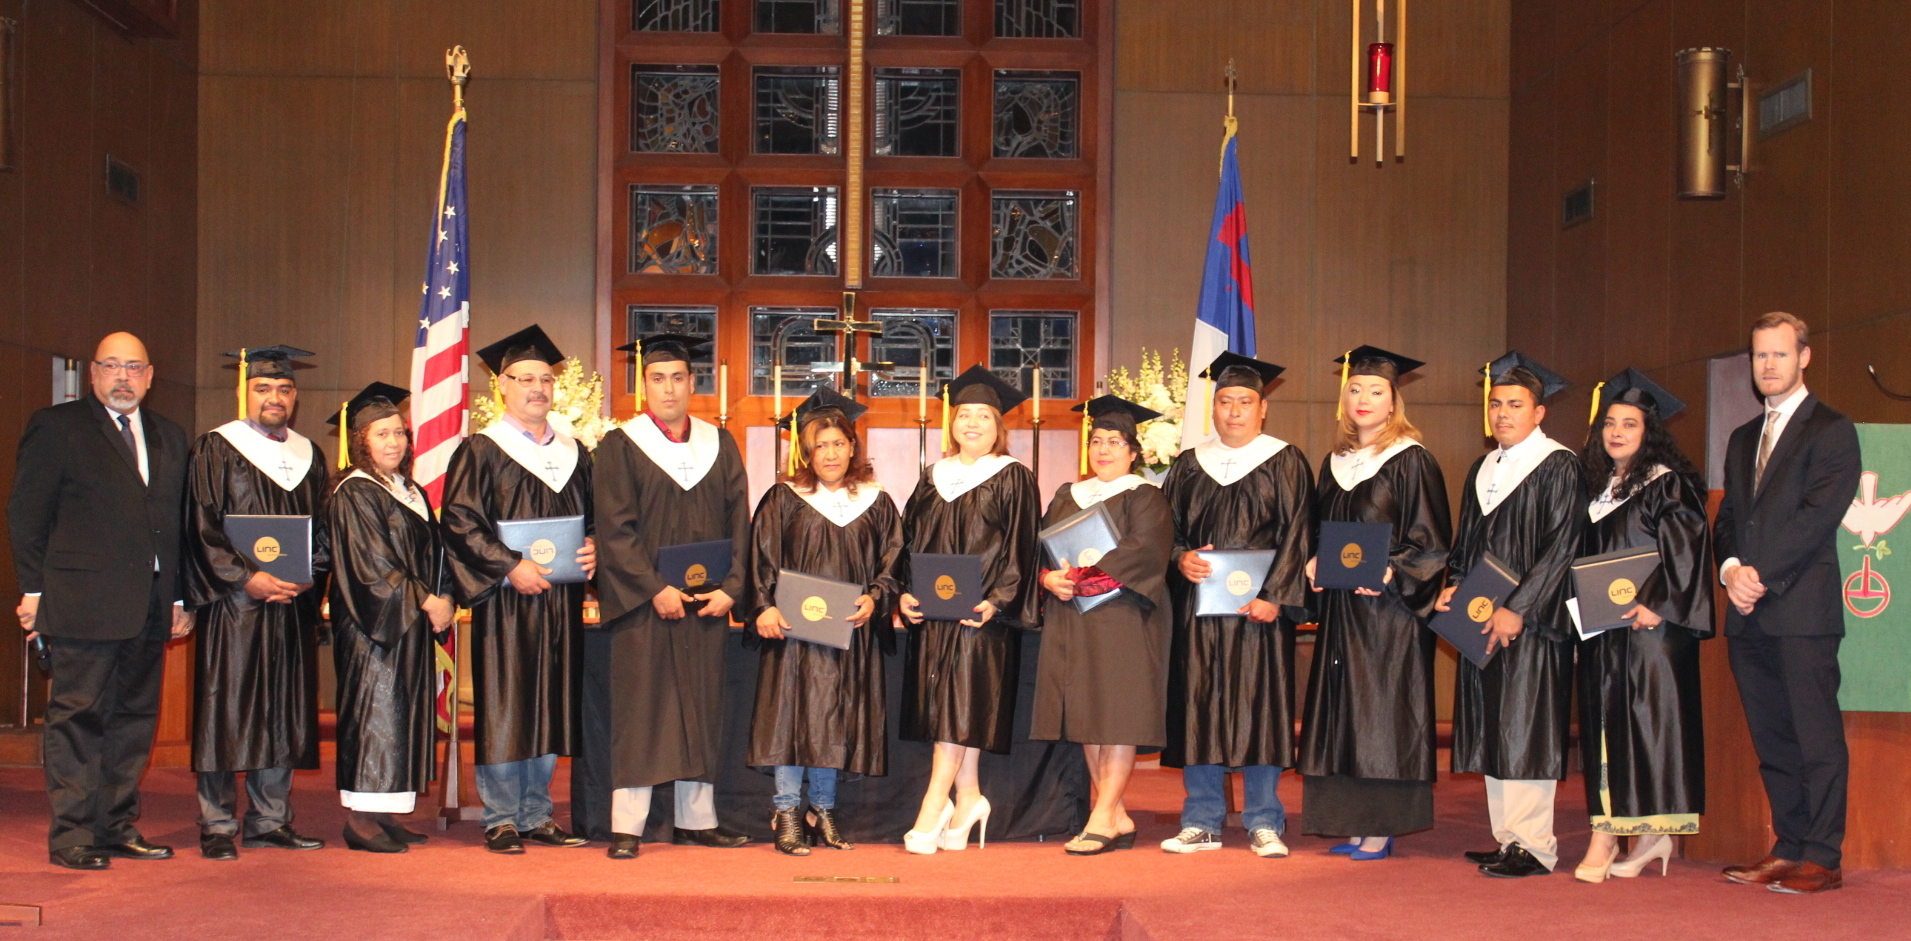 Instituto biblico linc graduates -- january 14, 2017